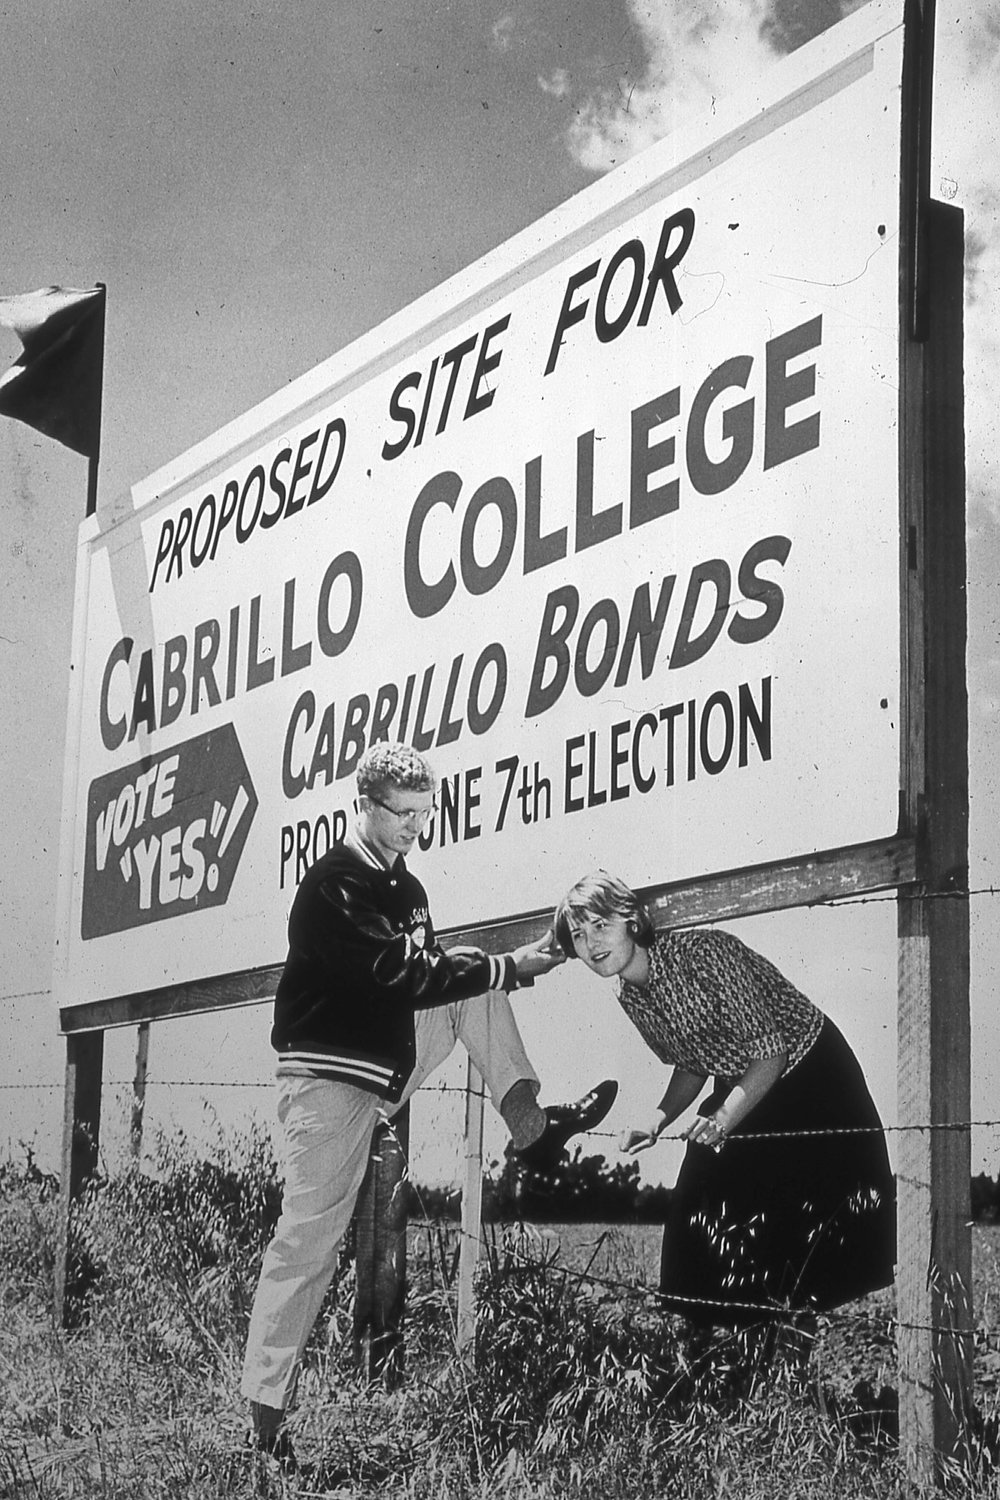 Cabrillo students help the campaign by putting up signs promoting the bond issue.